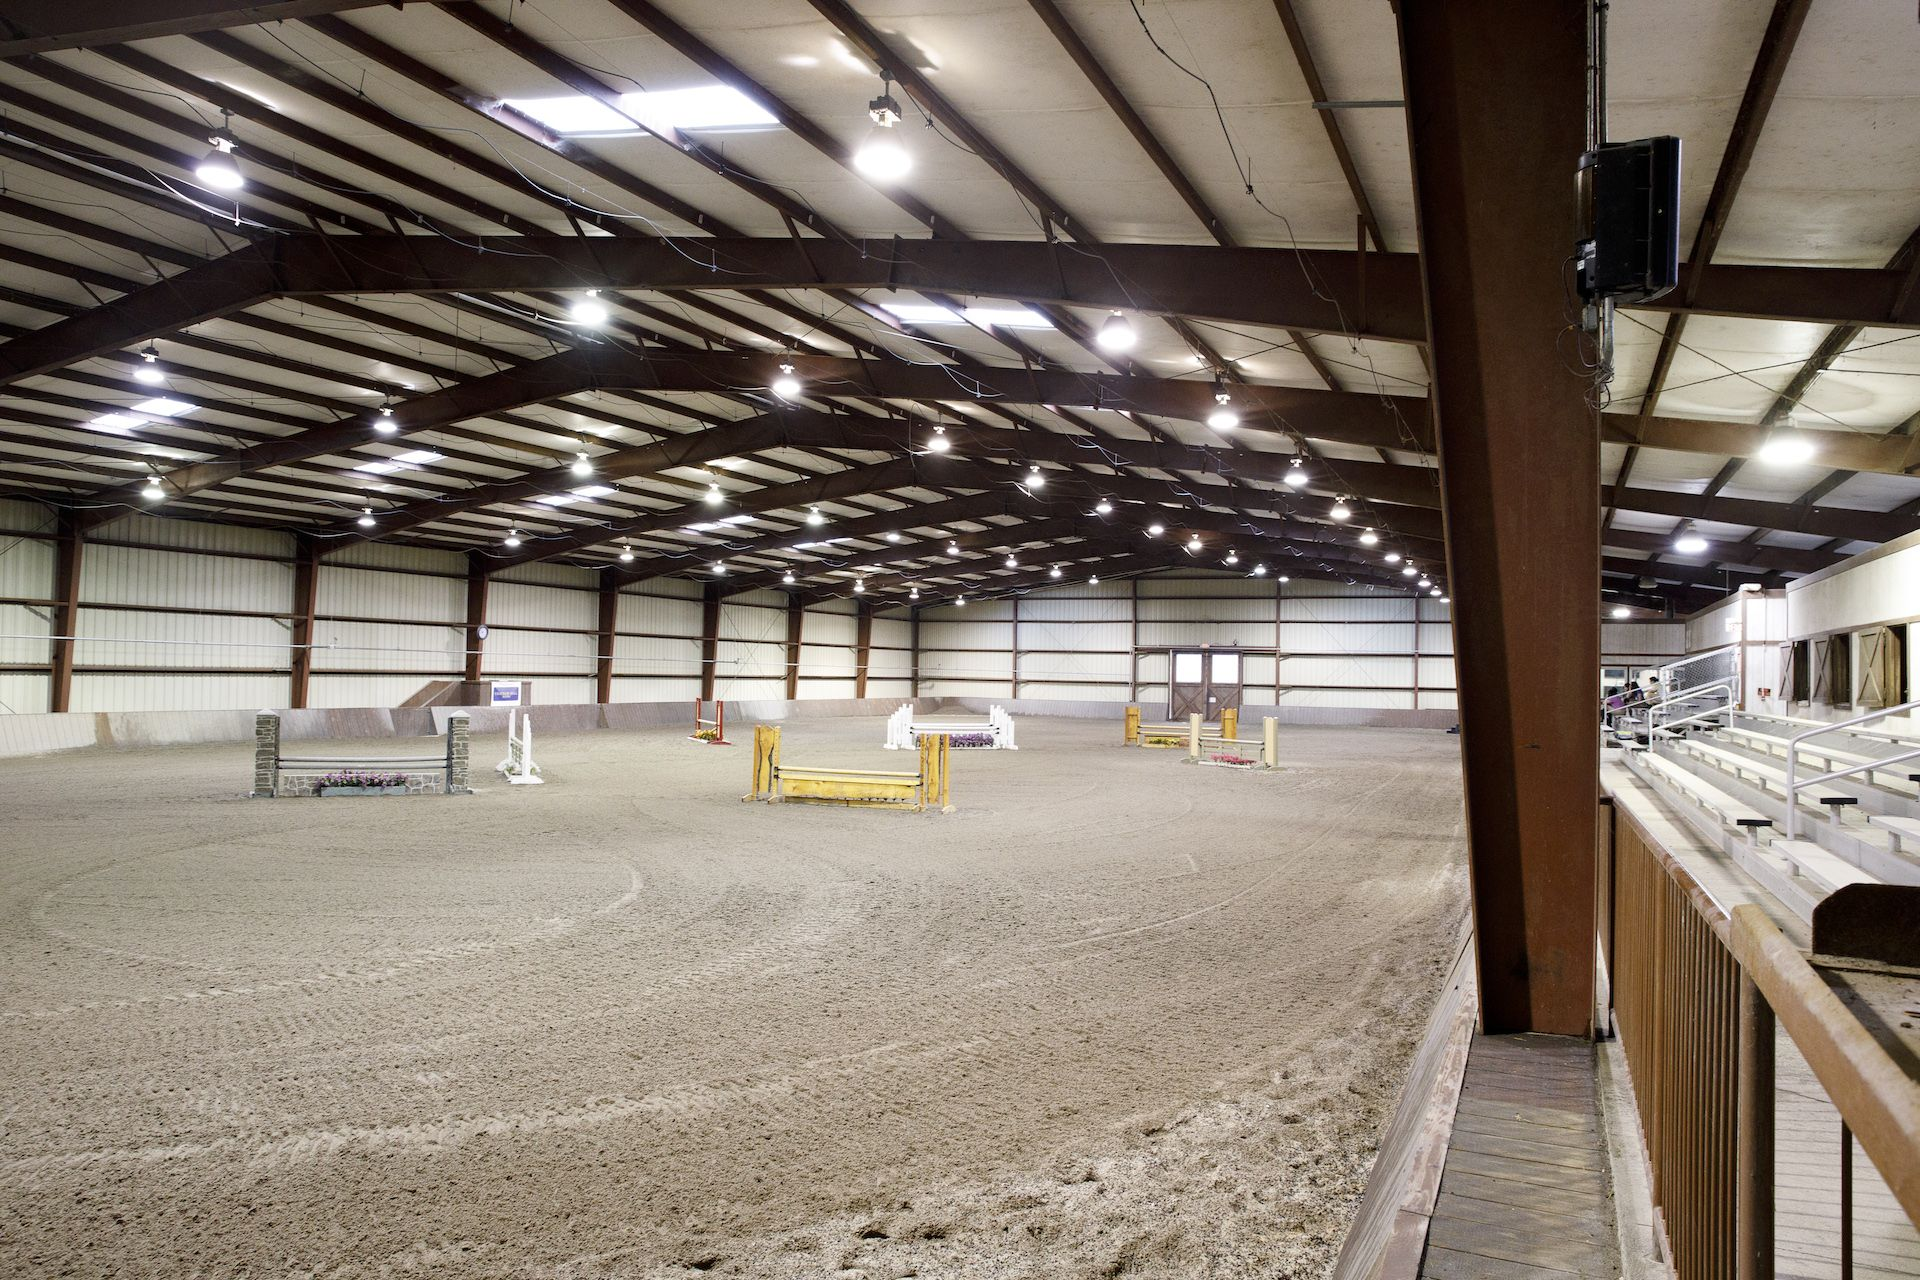 The Mars Riding Arena is the centerpiece of Chatham Hall